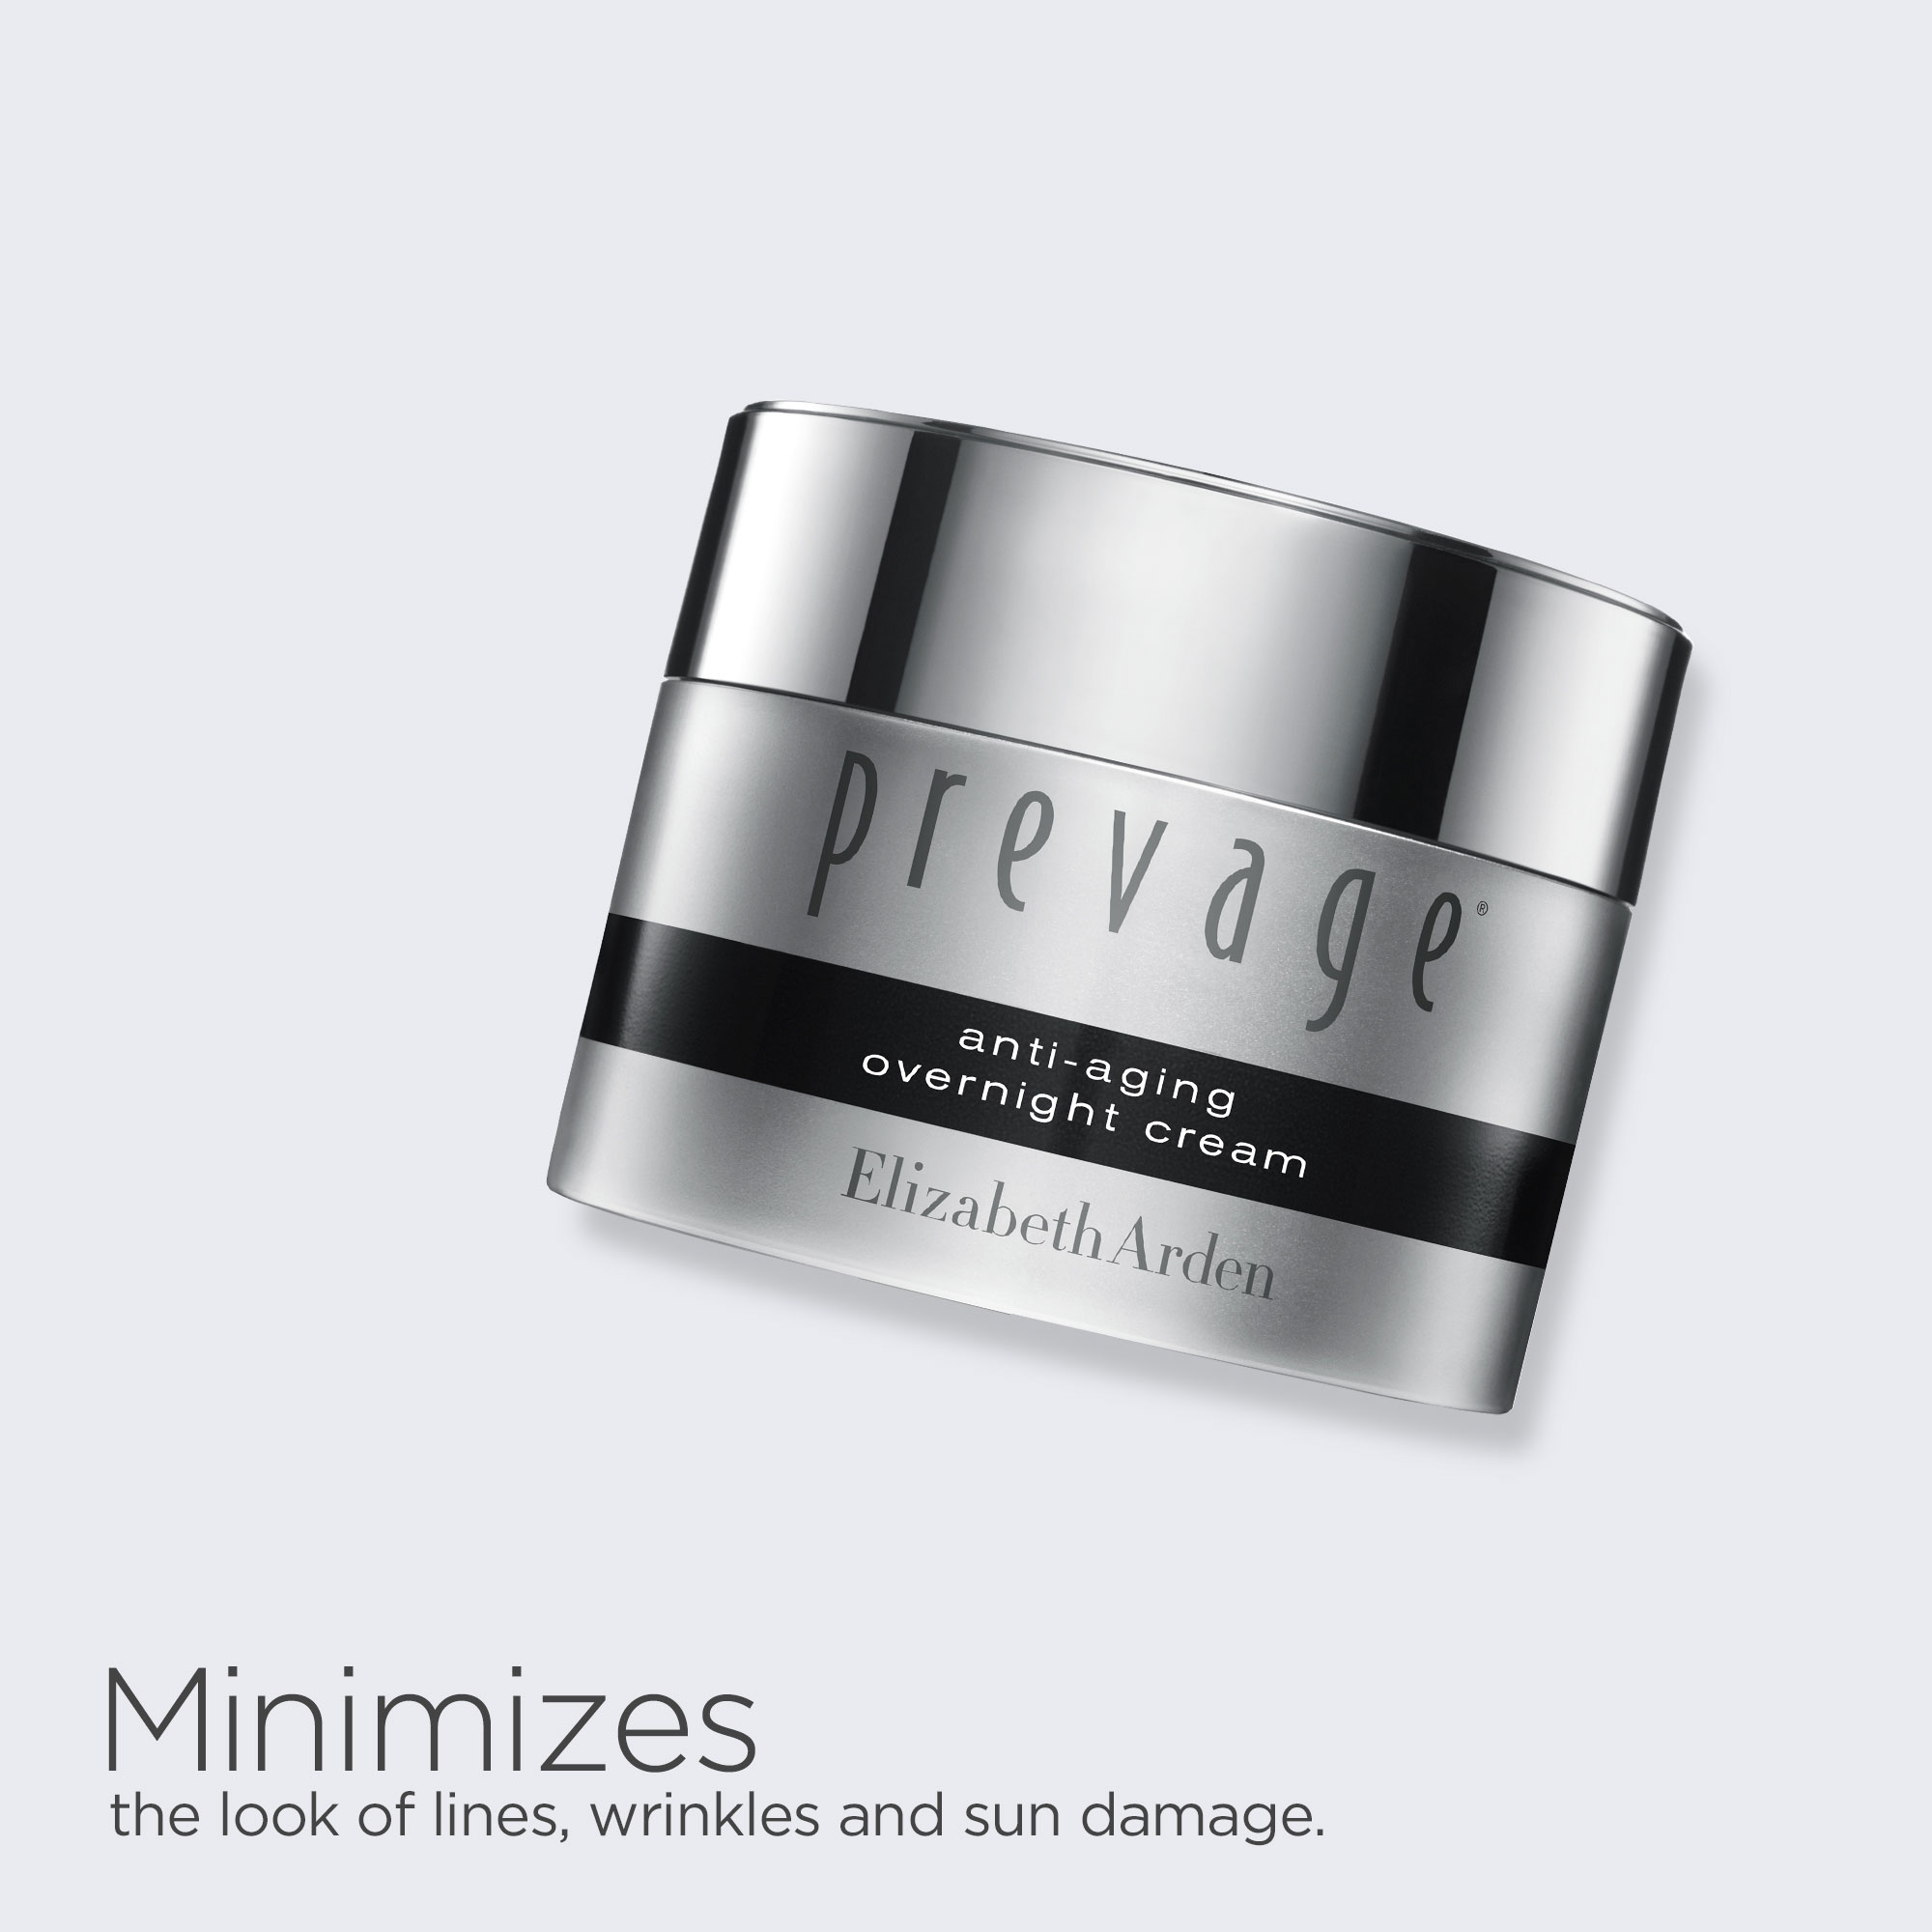 Prevage Night Cream minimizes the look of lines, wrinkles and sun damage.